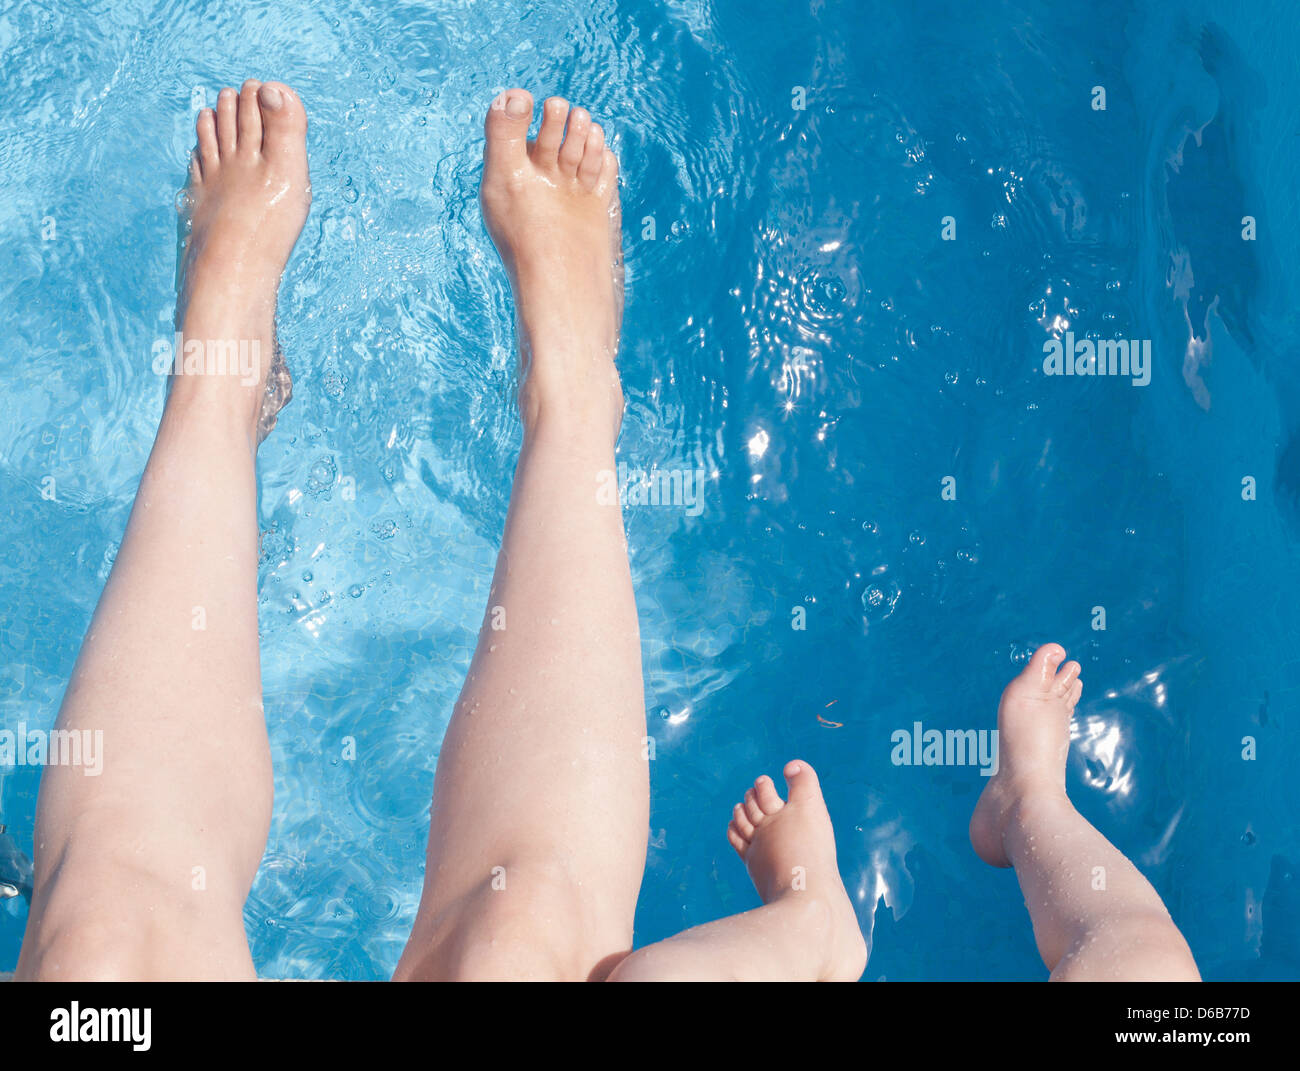 Mother and son playing in swimming pool - Stock Image